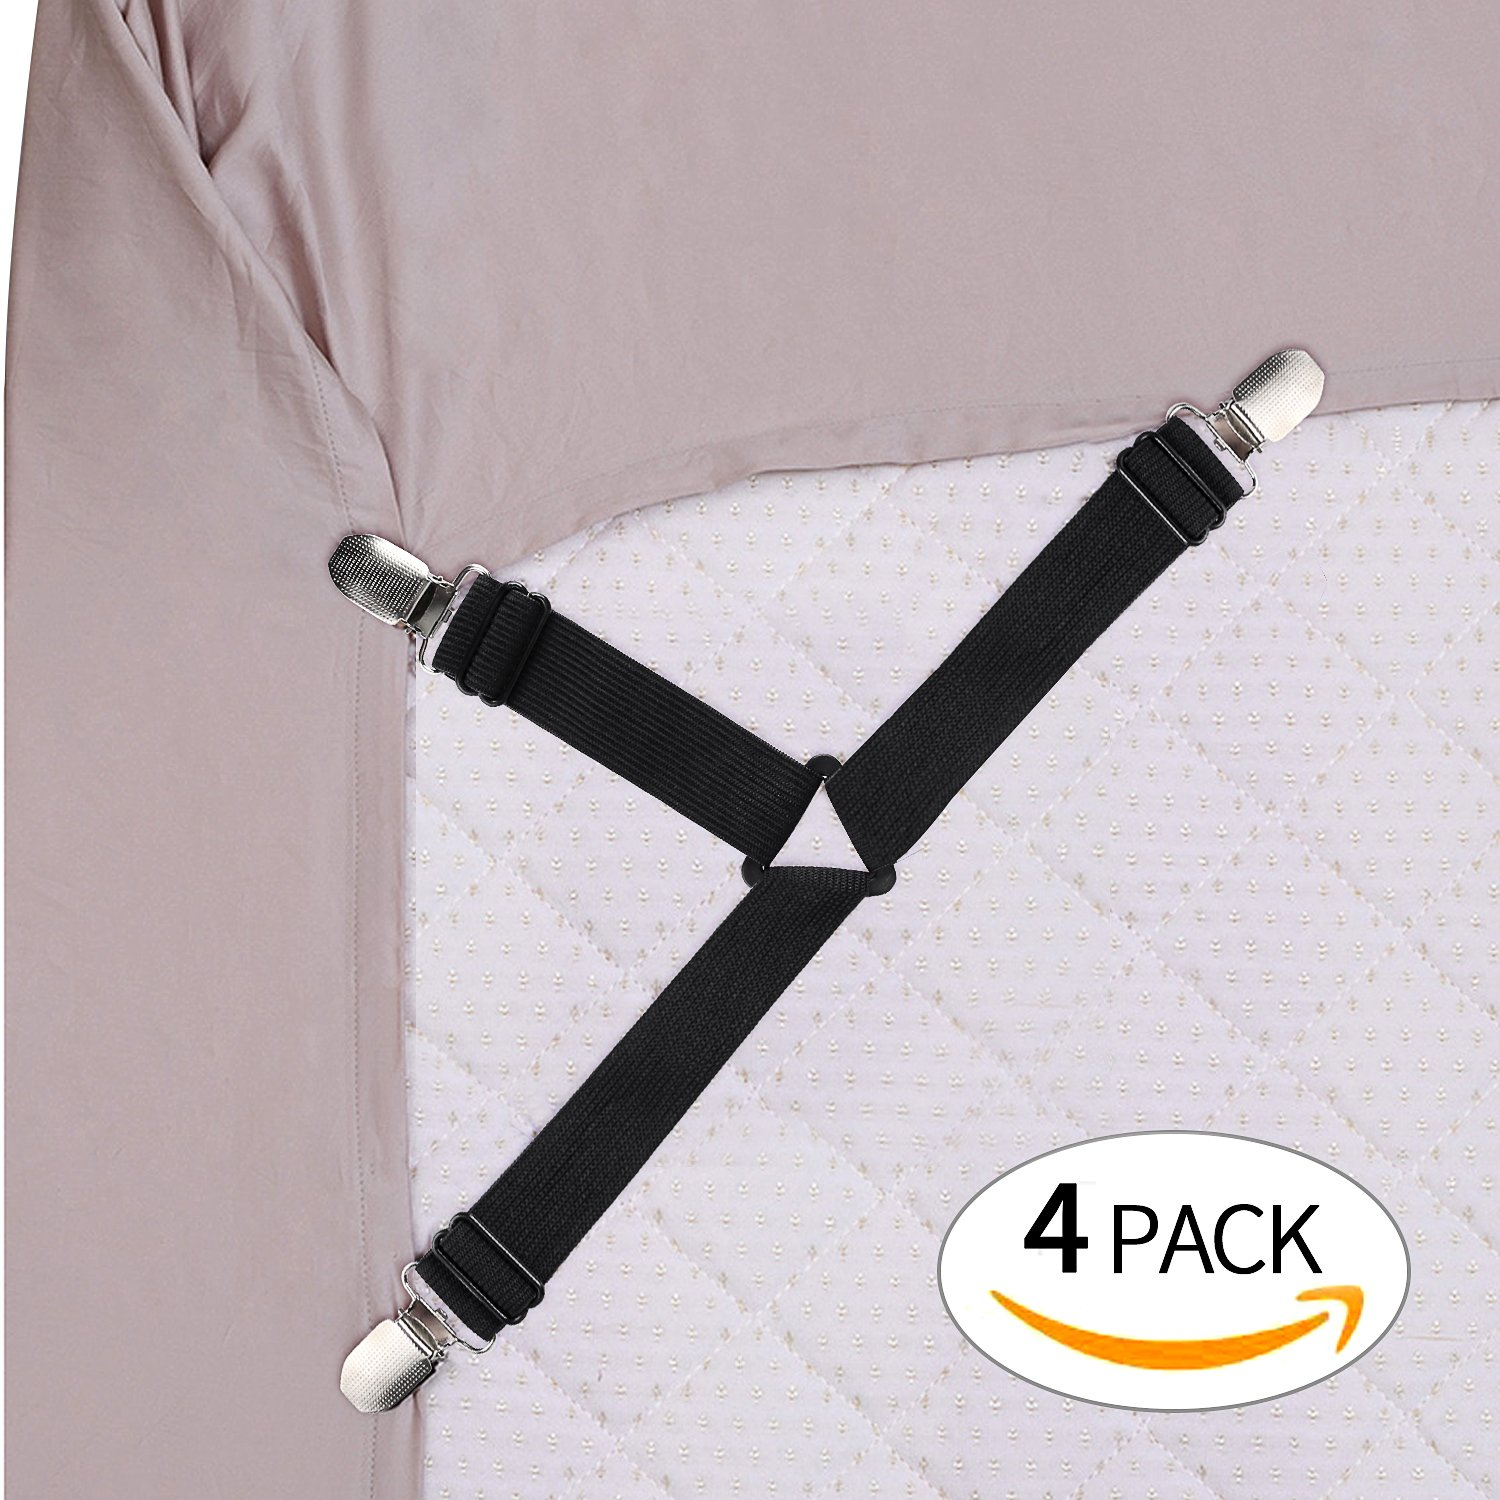 ONSON Bed Sheet Fasteners, Adjustable Triangle Elastic Suspenders Gripper Holder Straps Clip for Bed Sheets,Mattress Covers, Sofa Cushion(4Pack)